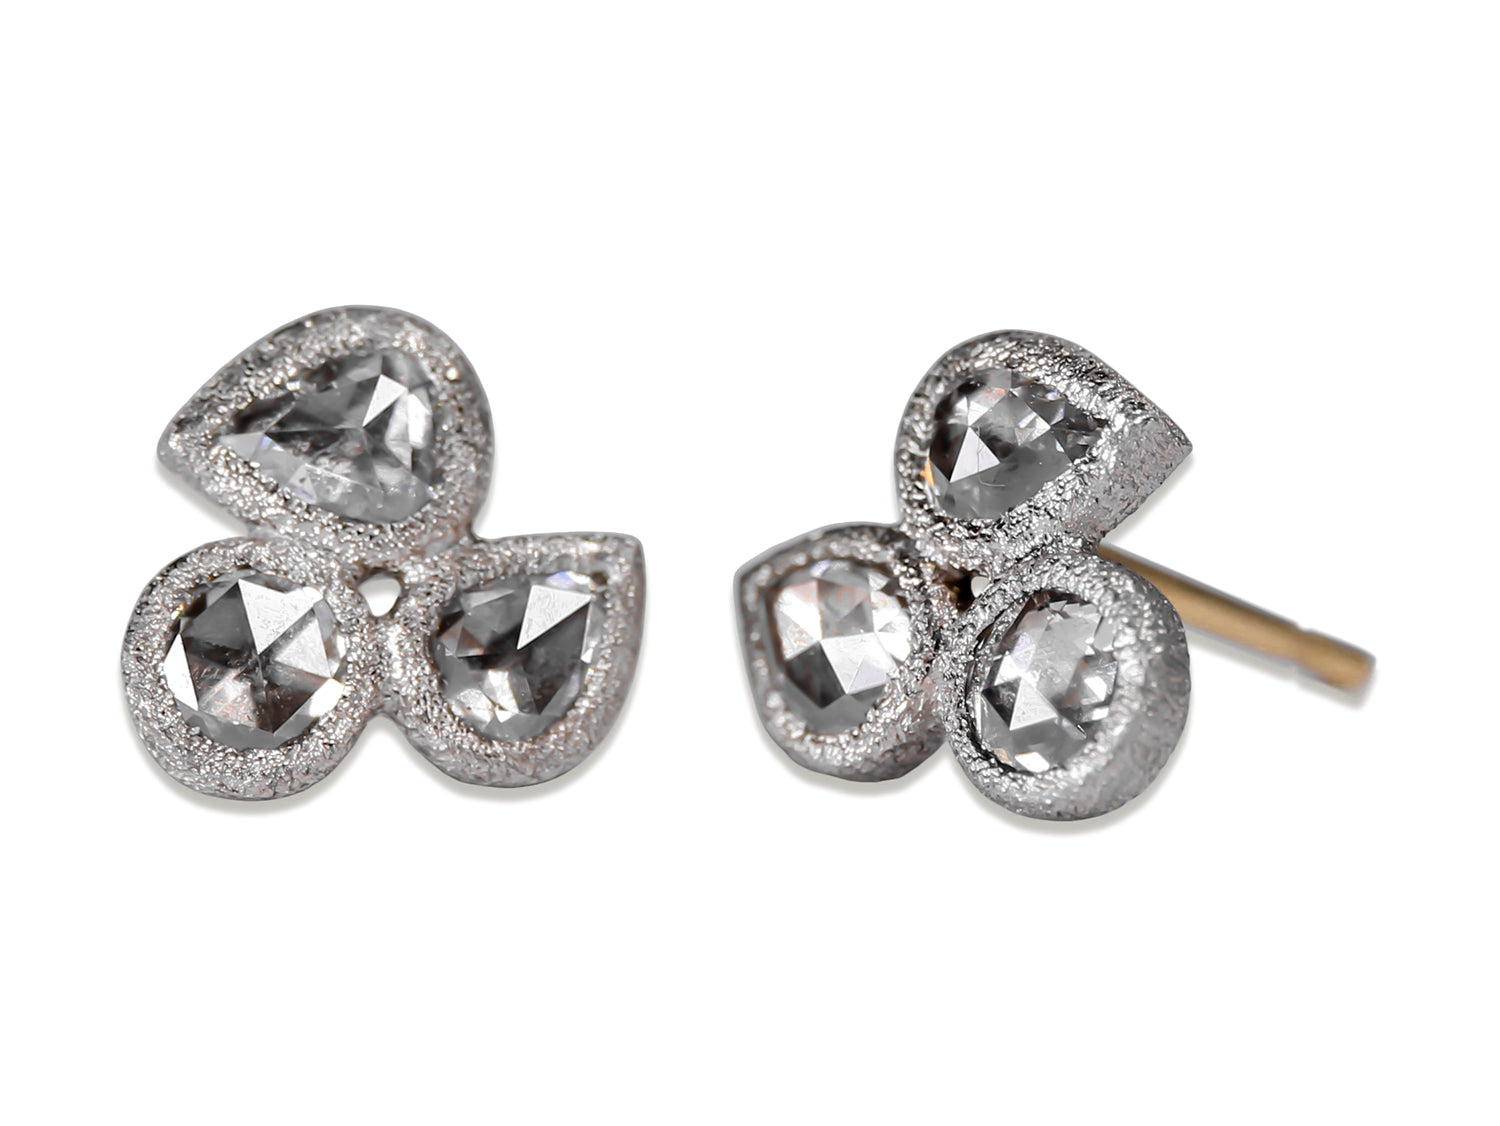 Inverted (Upside Down) Diamond Trio Stud Earrings in White Gold